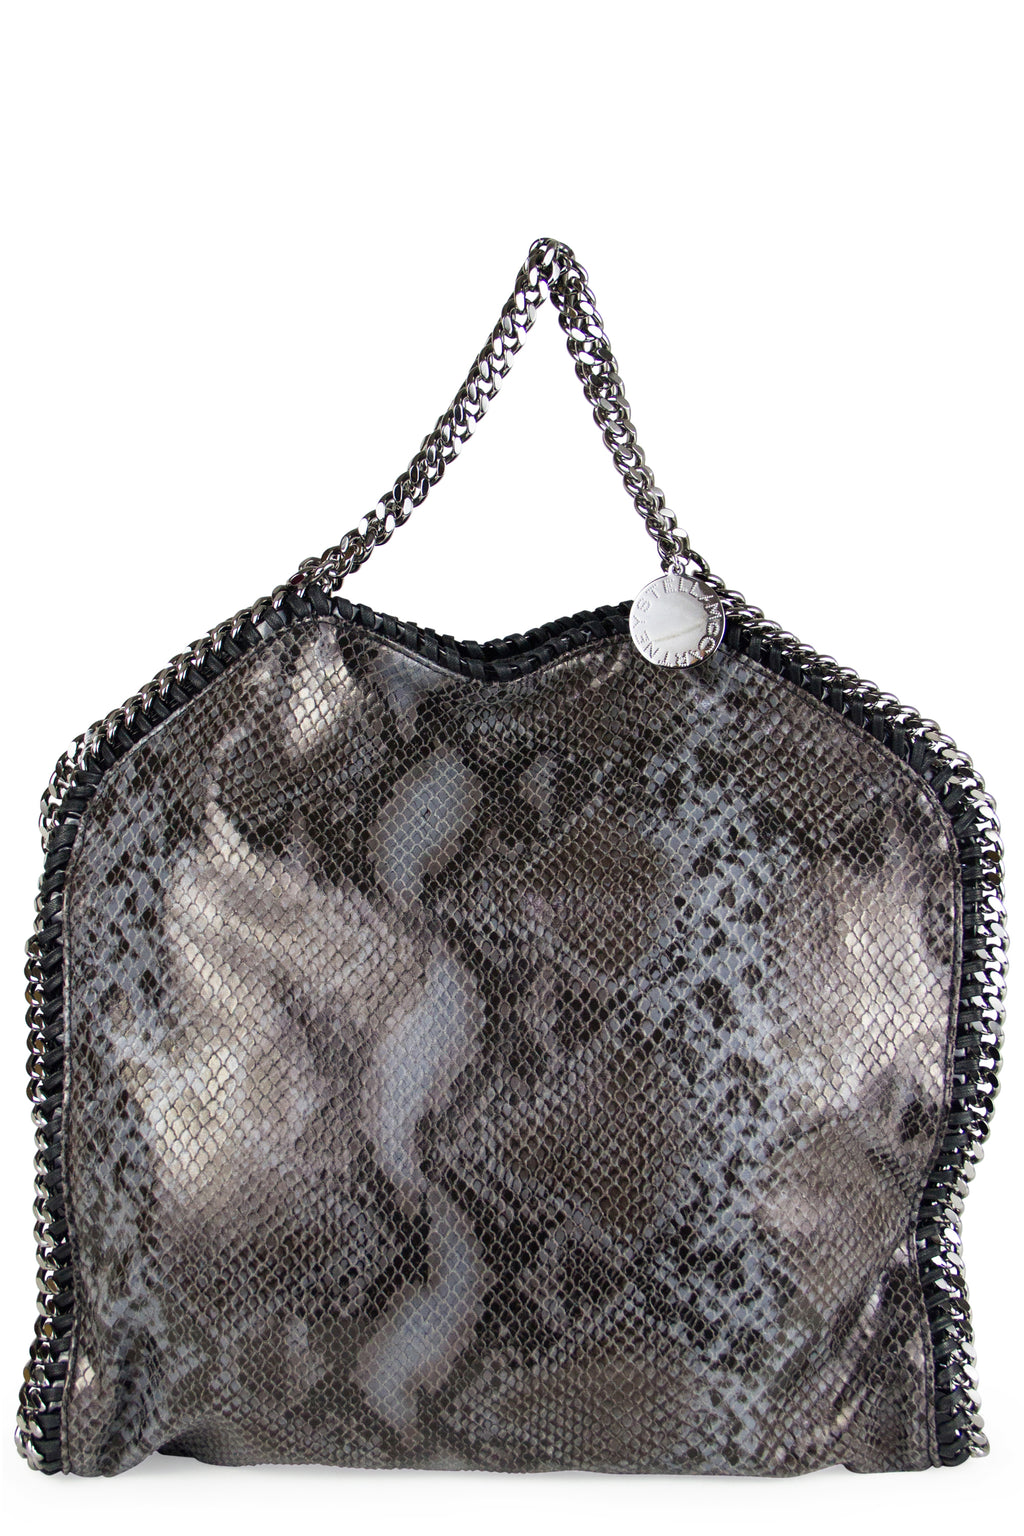 Stella McCartney Grey Faux Python Falabella Fold Over Tote Bag Frontalansicht